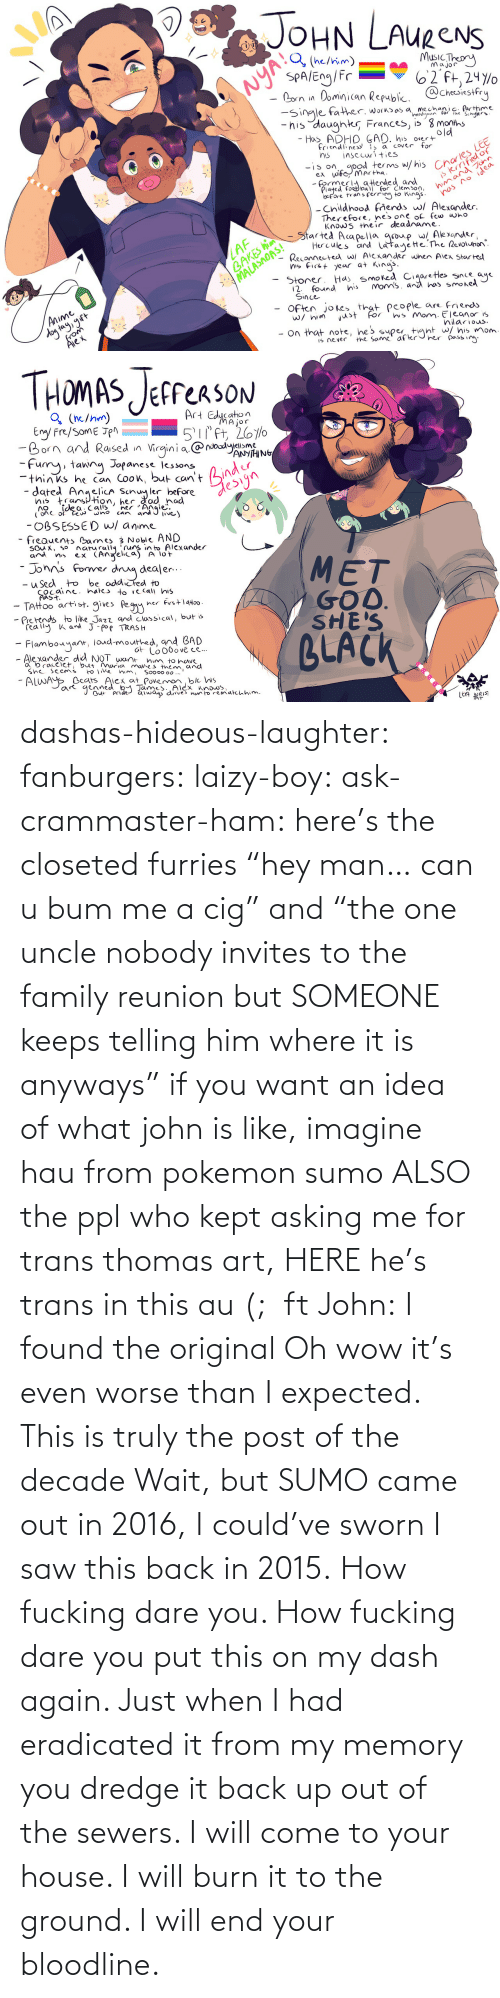 "him: dashas-hideous-laughter:  fanburgers:   laizy-boy:   ask-crammaster-ham:   here's the closeted furries ""hey man… can u bum me a cig"" and ""the one uncle nobody invites to the family reunion but SOMEONE keeps telling him where it is anyways""   if you want an idea of what john is like, imagine hau from pokemon sumo ALSO the ppl who kept asking me for trans thomas art, HERE he's trans in this au (;  ft John:    I found the original     Oh wow it's even worse than I expected. This is truly the post of the decade    Wait, but SUMO came out in 2016, I could've sworn I saw this back in 2015.    How fucking dare you. How fucking dare you put this on my dash again. Just when I had eradicated it from my memory you dredge it back up out of the sewers. I will come to your house. I will burn it to the ground. I will end your bloodline."